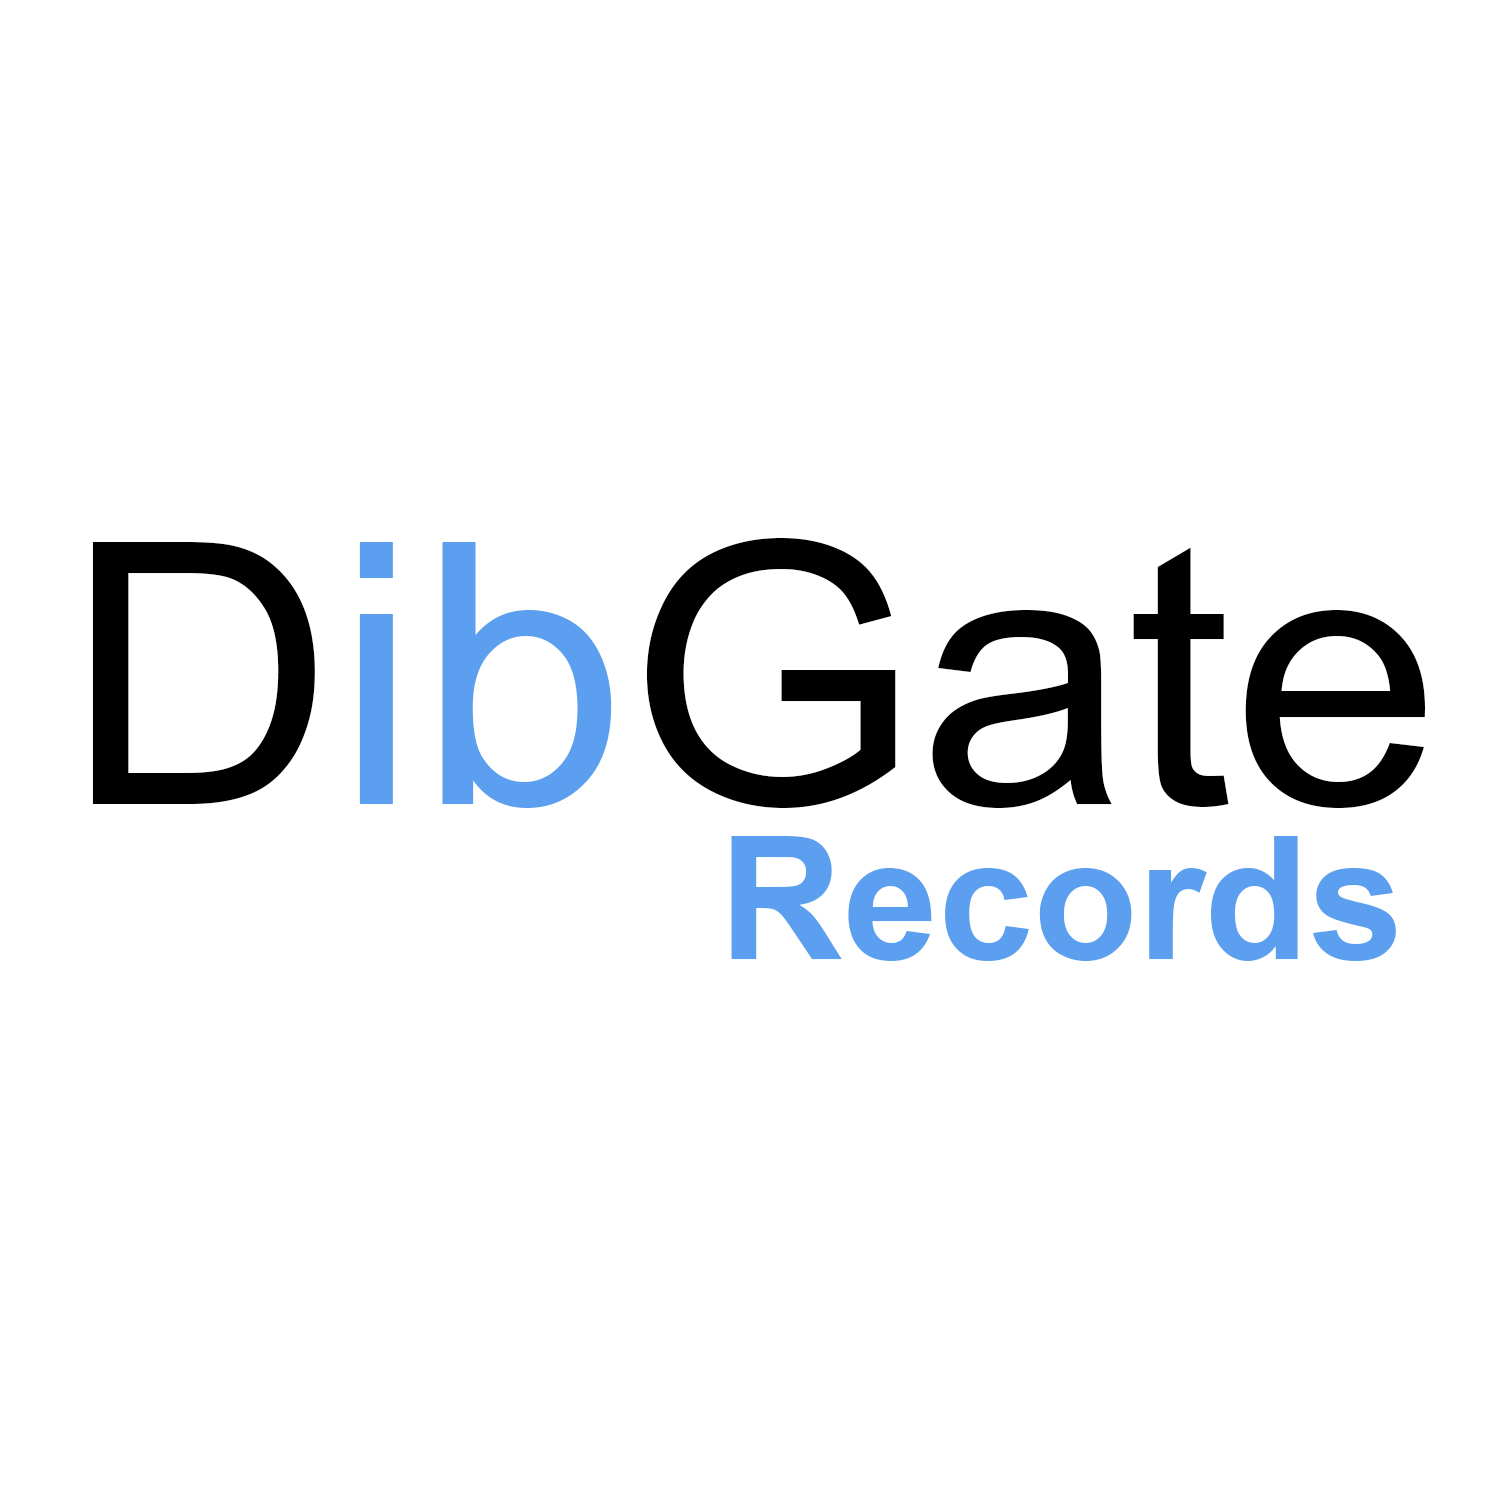 Dibgate Records